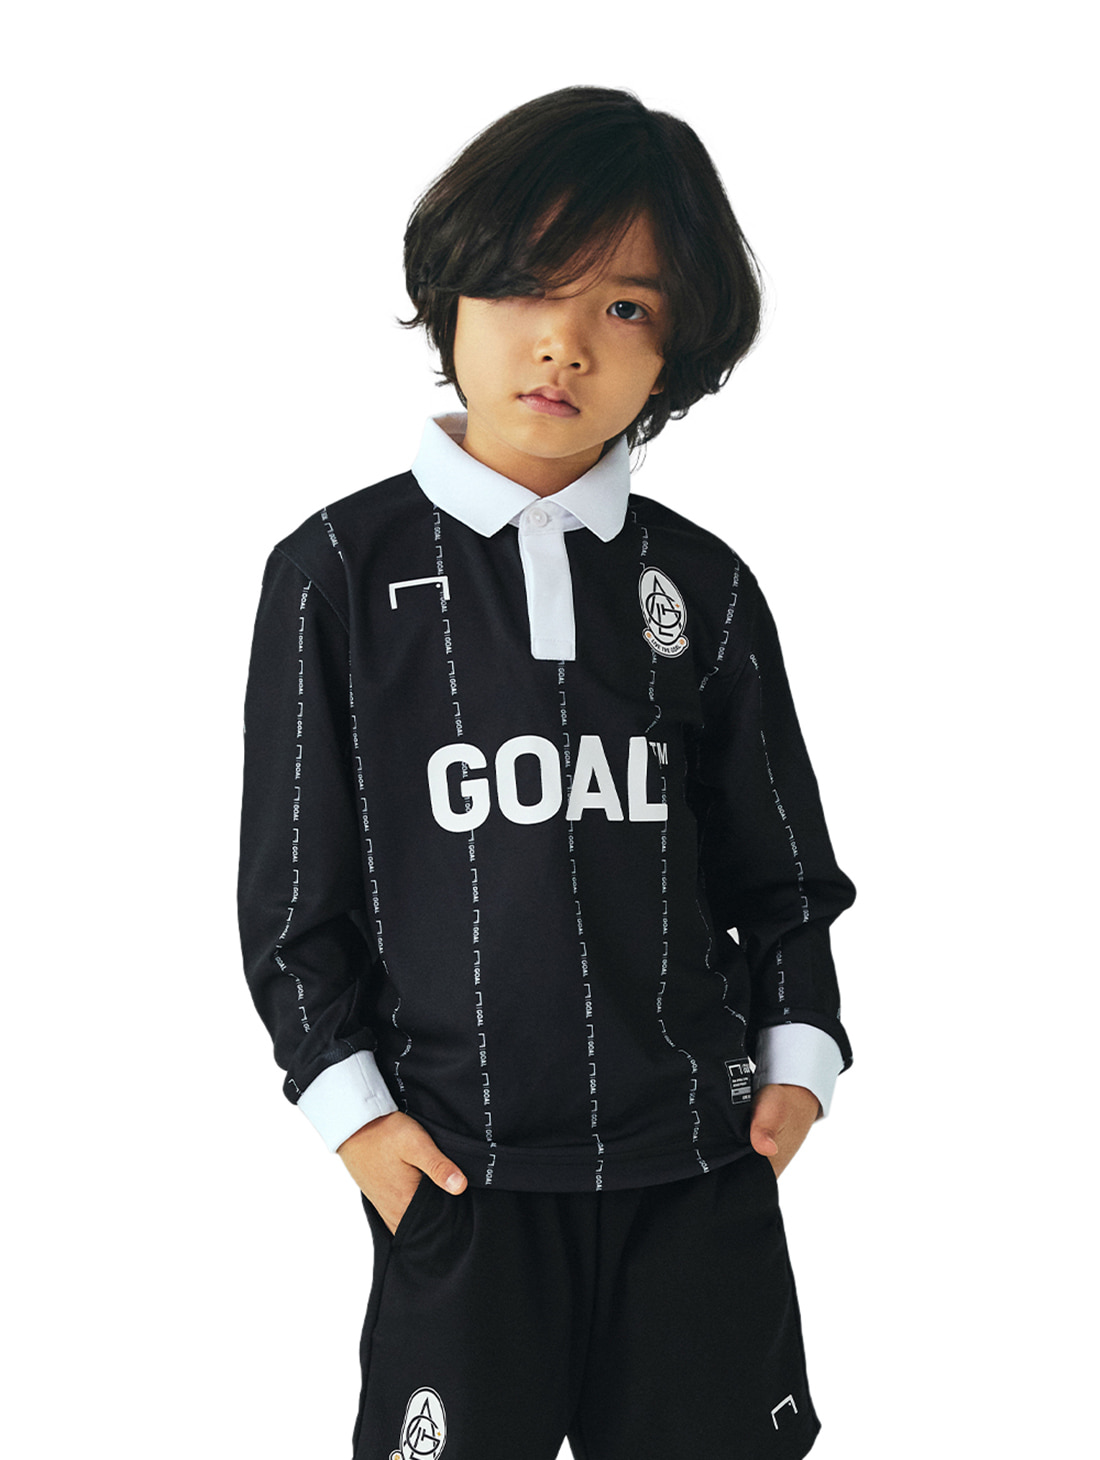 GOALSTUDIO (KIDS) PLAYER EMBLEM JERSEY - BLACK